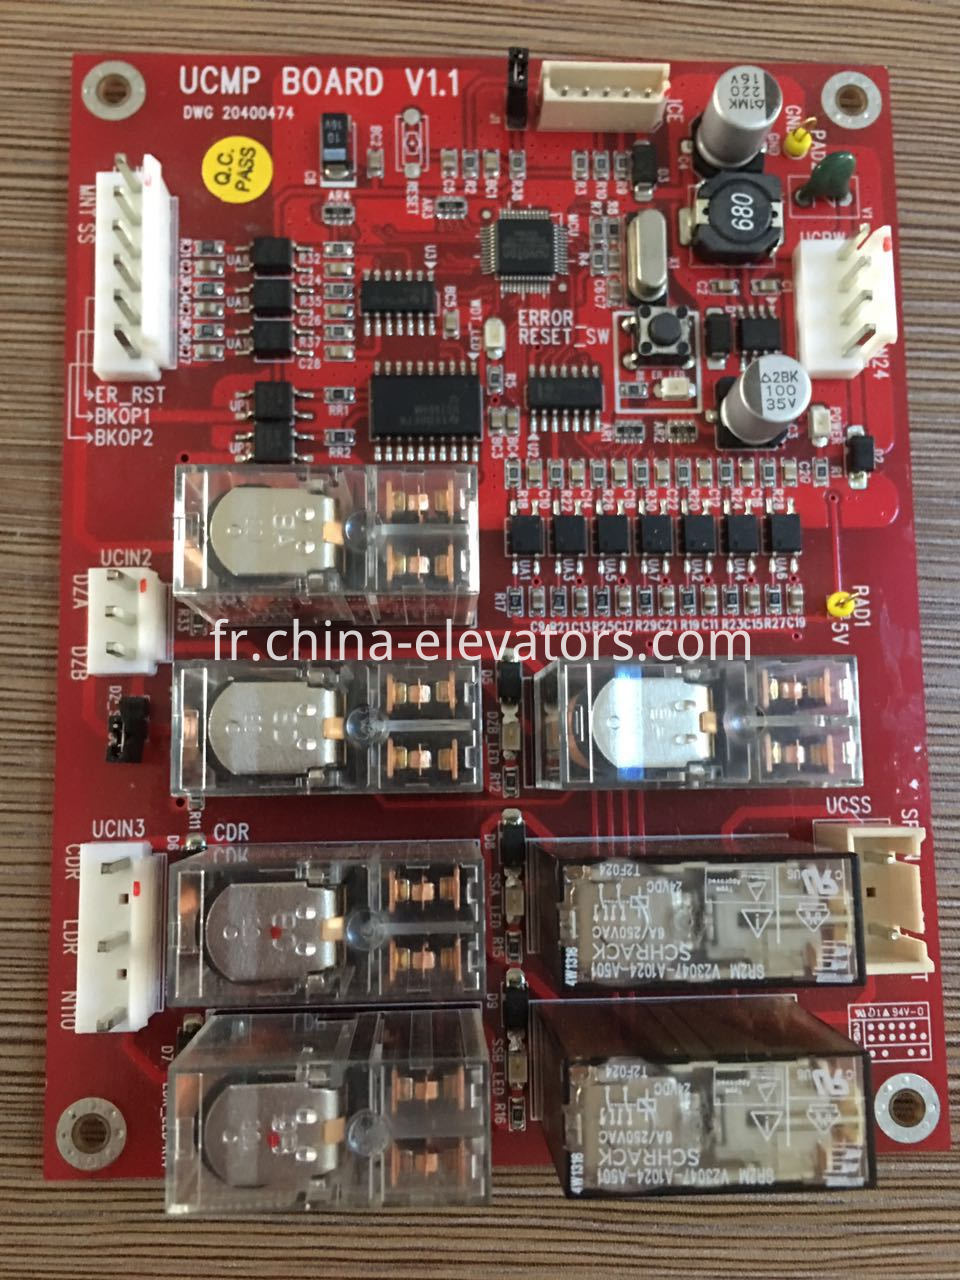 UCMP Board for Hyundai Elevators, DWG 20400474